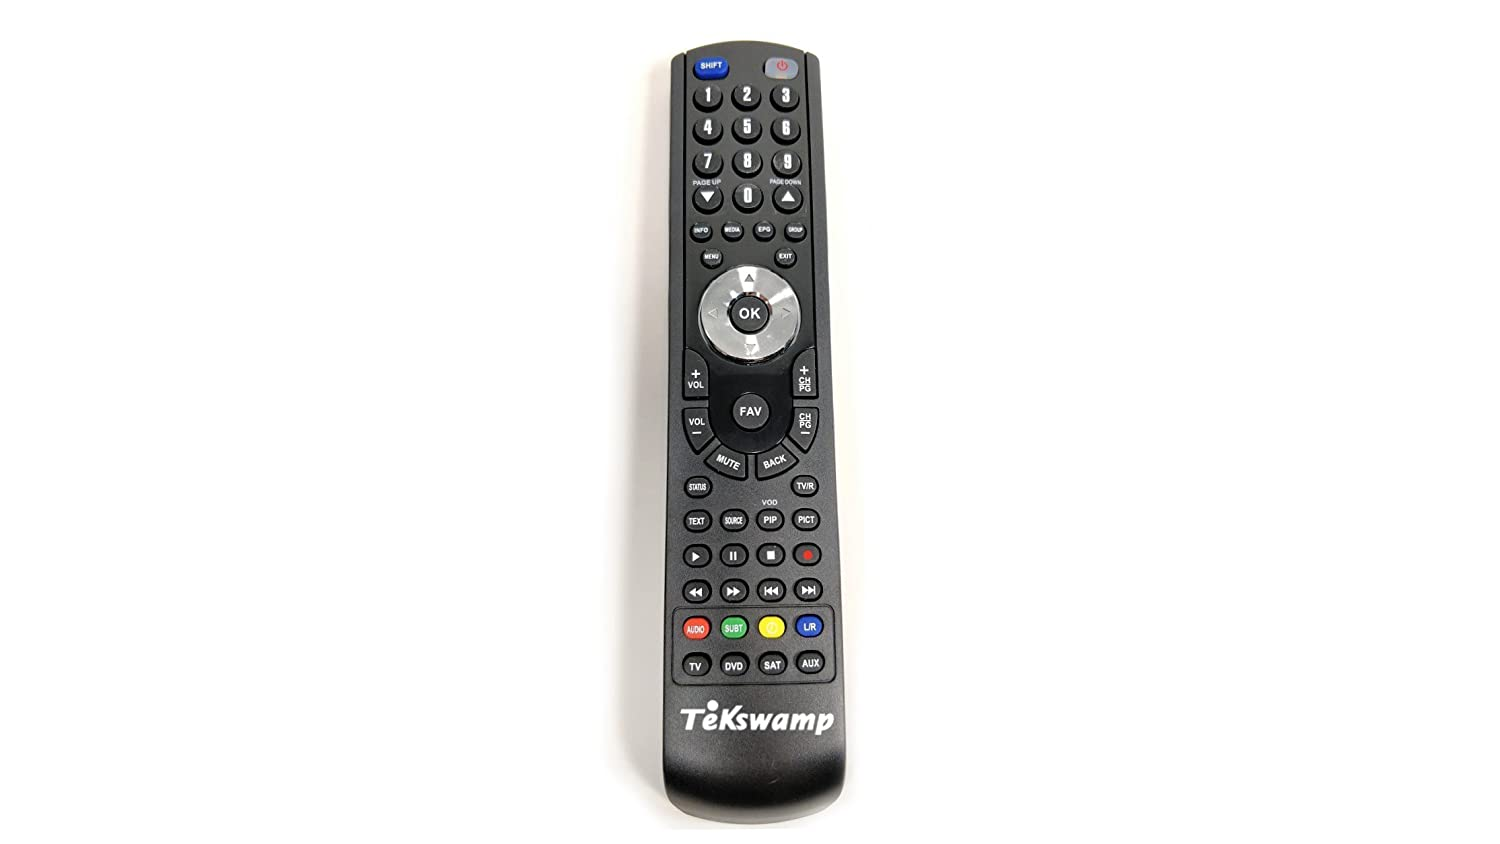 Tekswamp TV Remote Control for Mitsubishi LT-52151 TL Electronics CO.